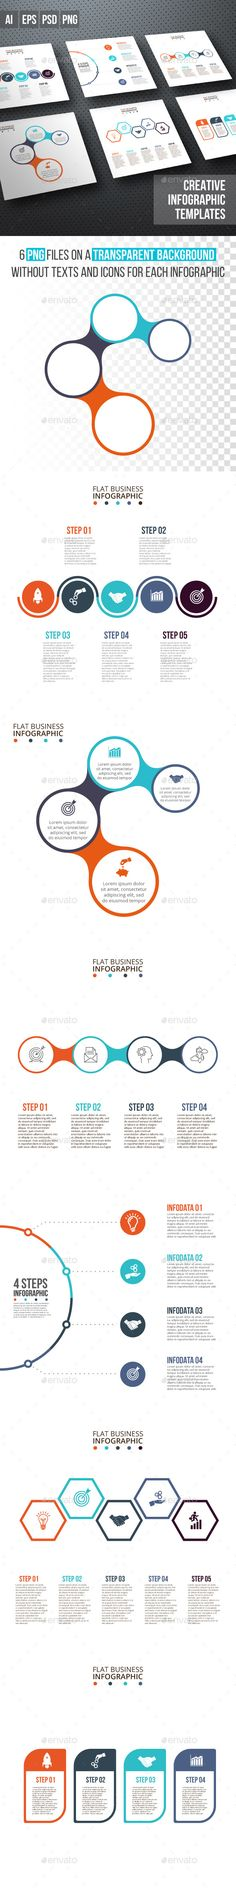 Business infographic diagrams Template Design v.13 - #Business #Infographic #Diagram #Template #Design. Download here: https://graphicriver.net/item/business-infographic-diagrams-v13/19508820??ref=yinkira